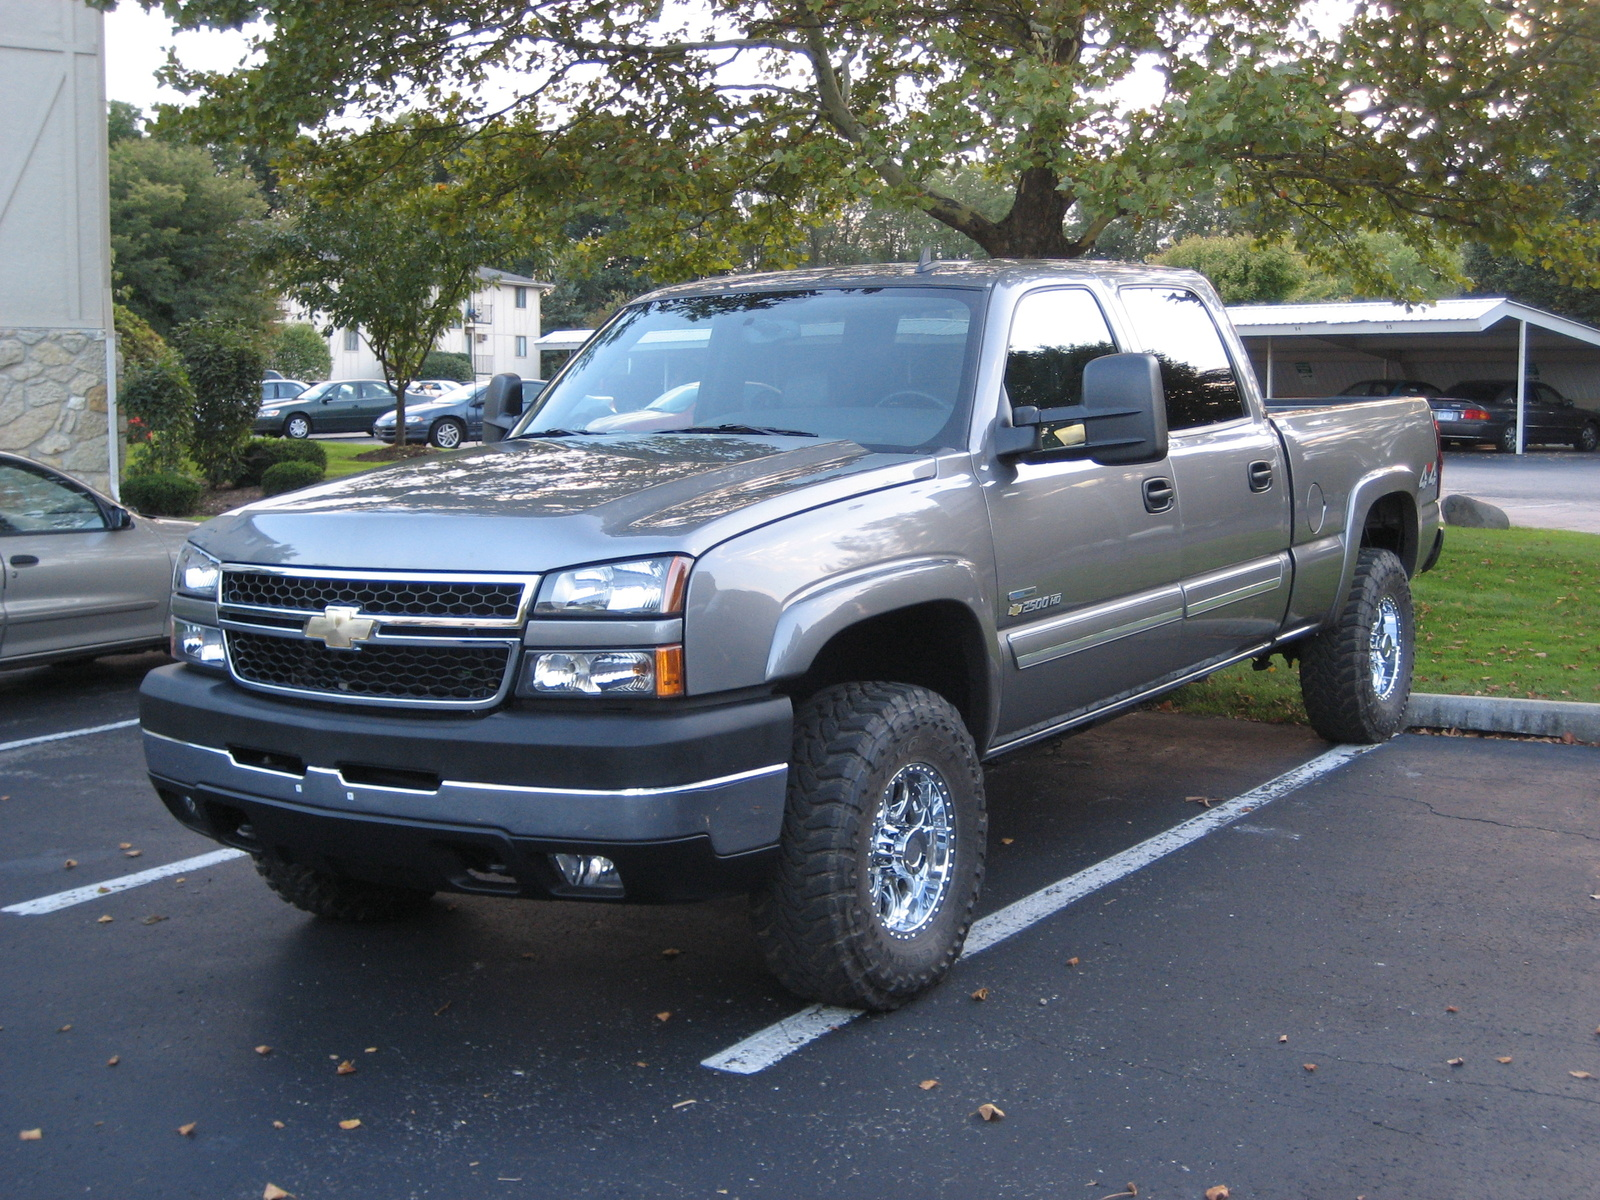 2003 Chevy Silverado Photo Galleryhtml In Hitizexytgithubcom 1949 Truck Crew Cab Source Code Search Engine